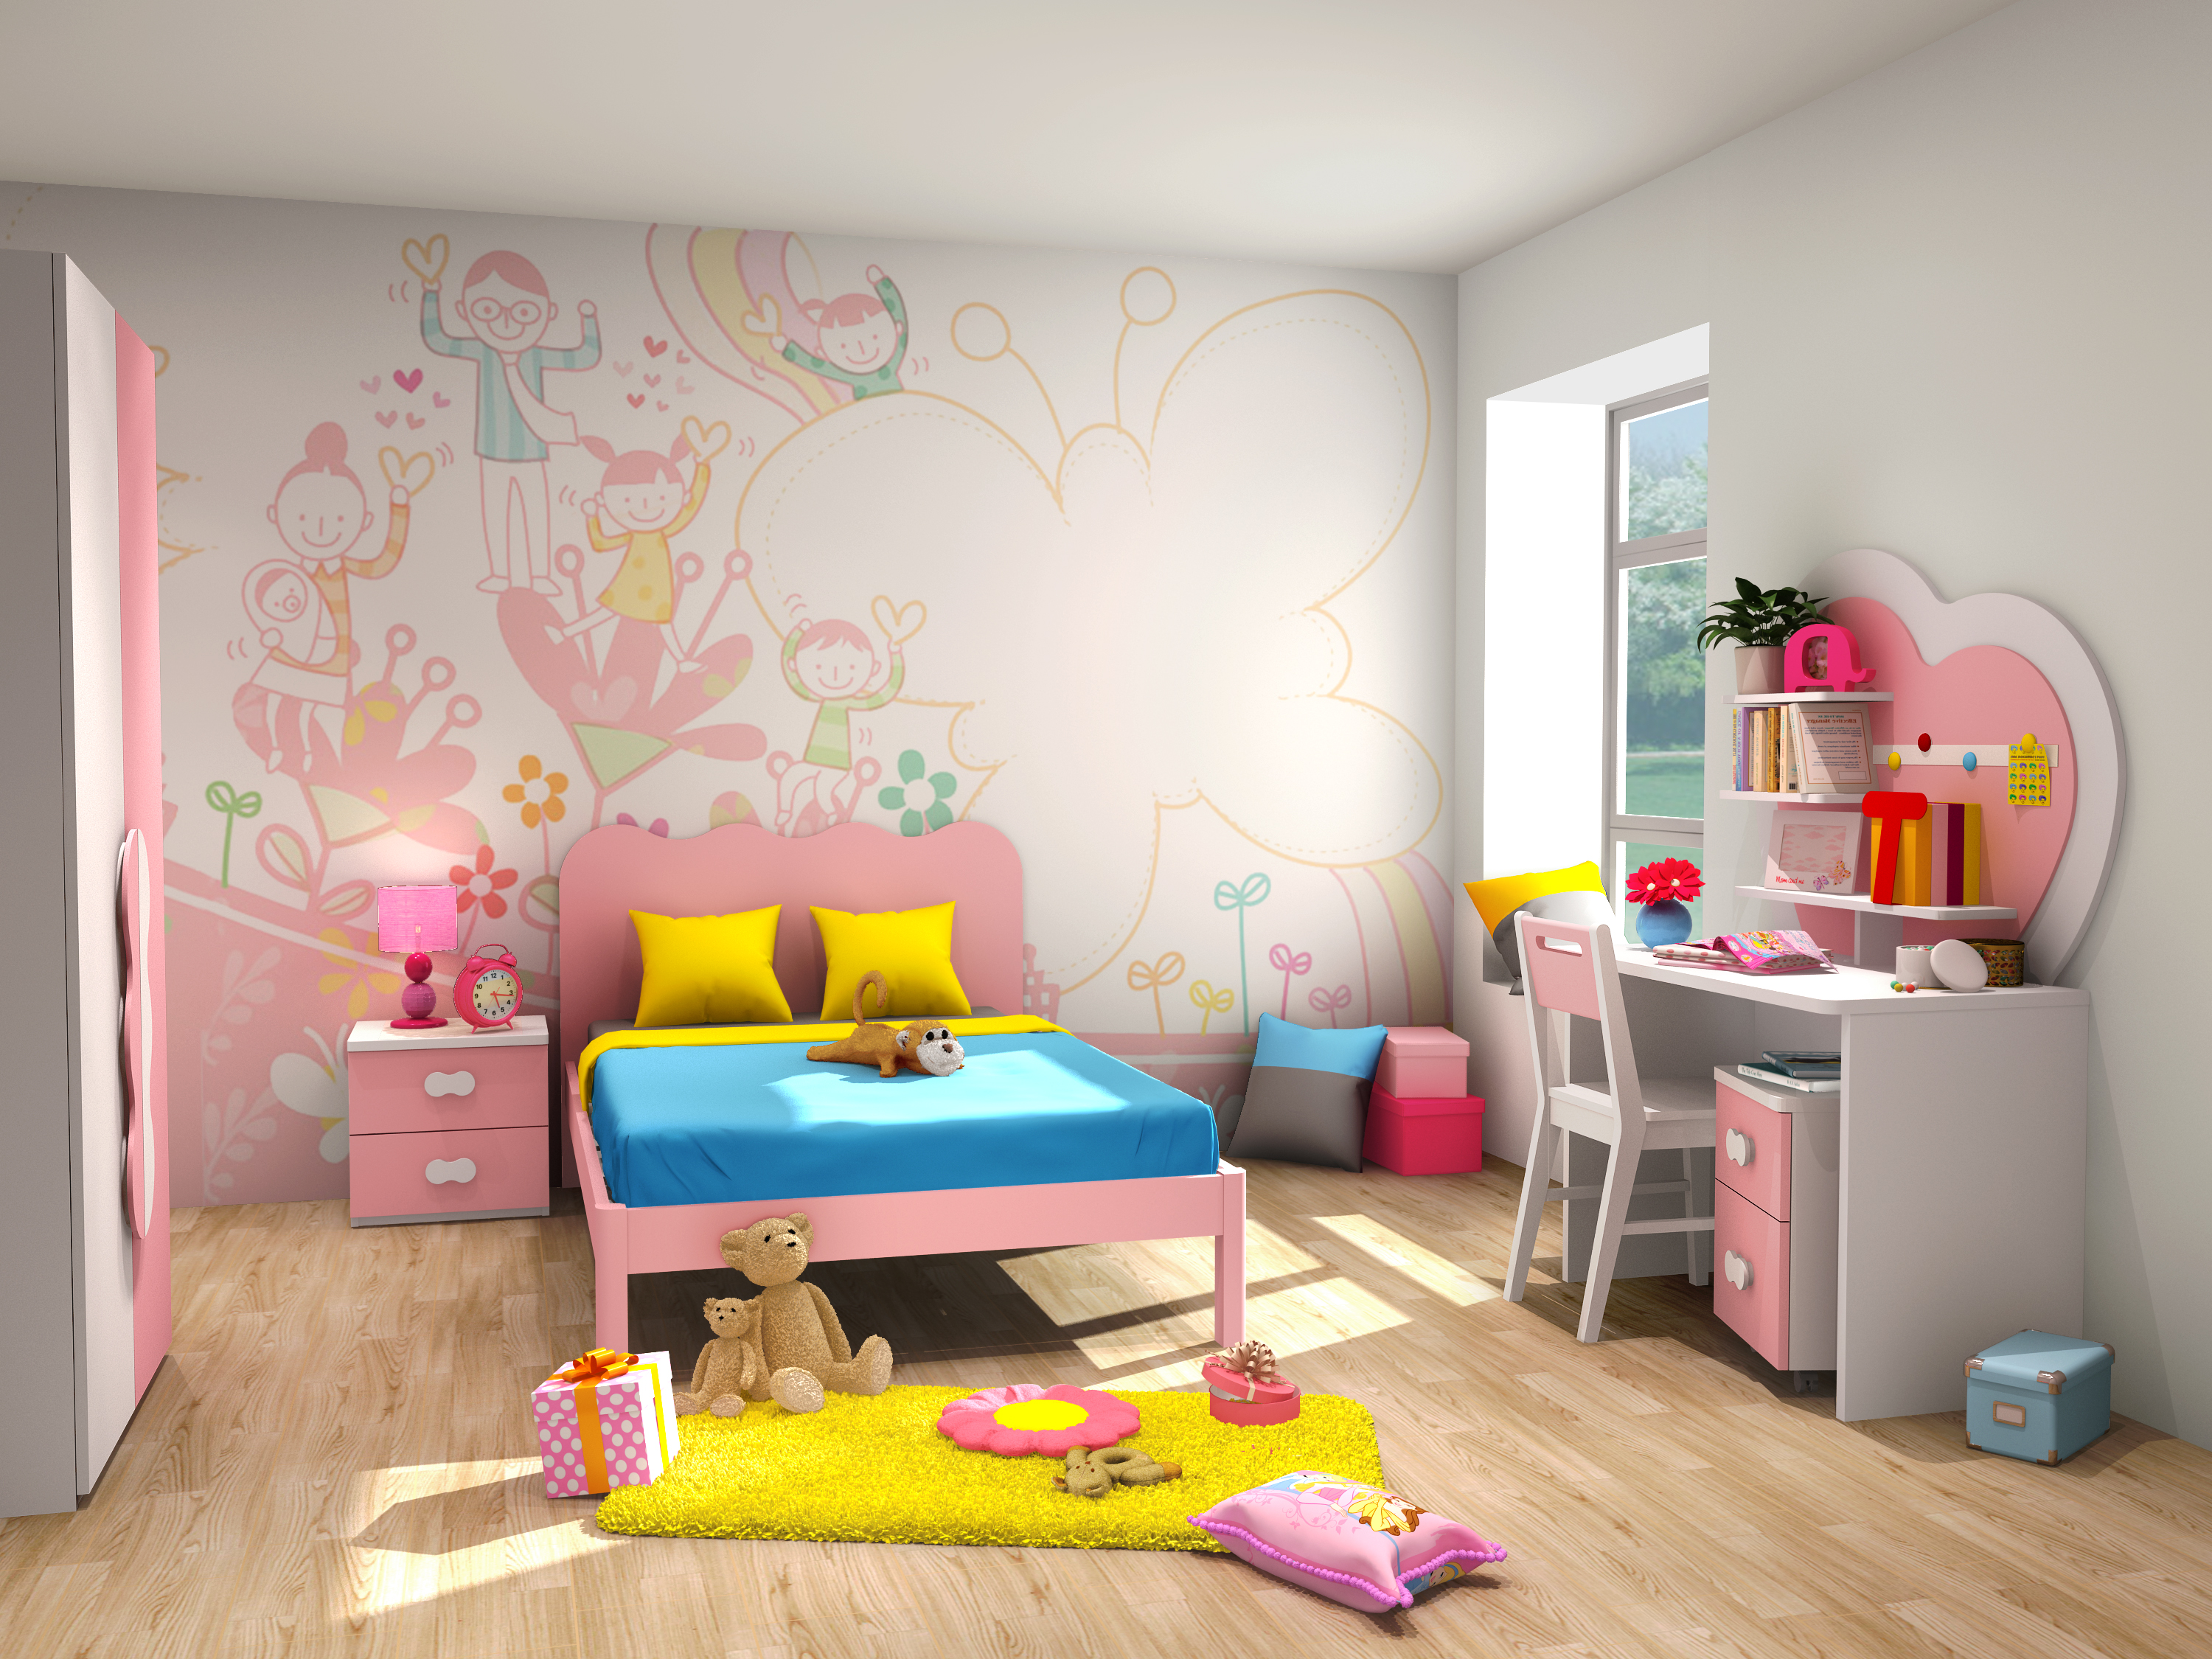 Nurture Creativity In Your Children With Exclusive Furniture